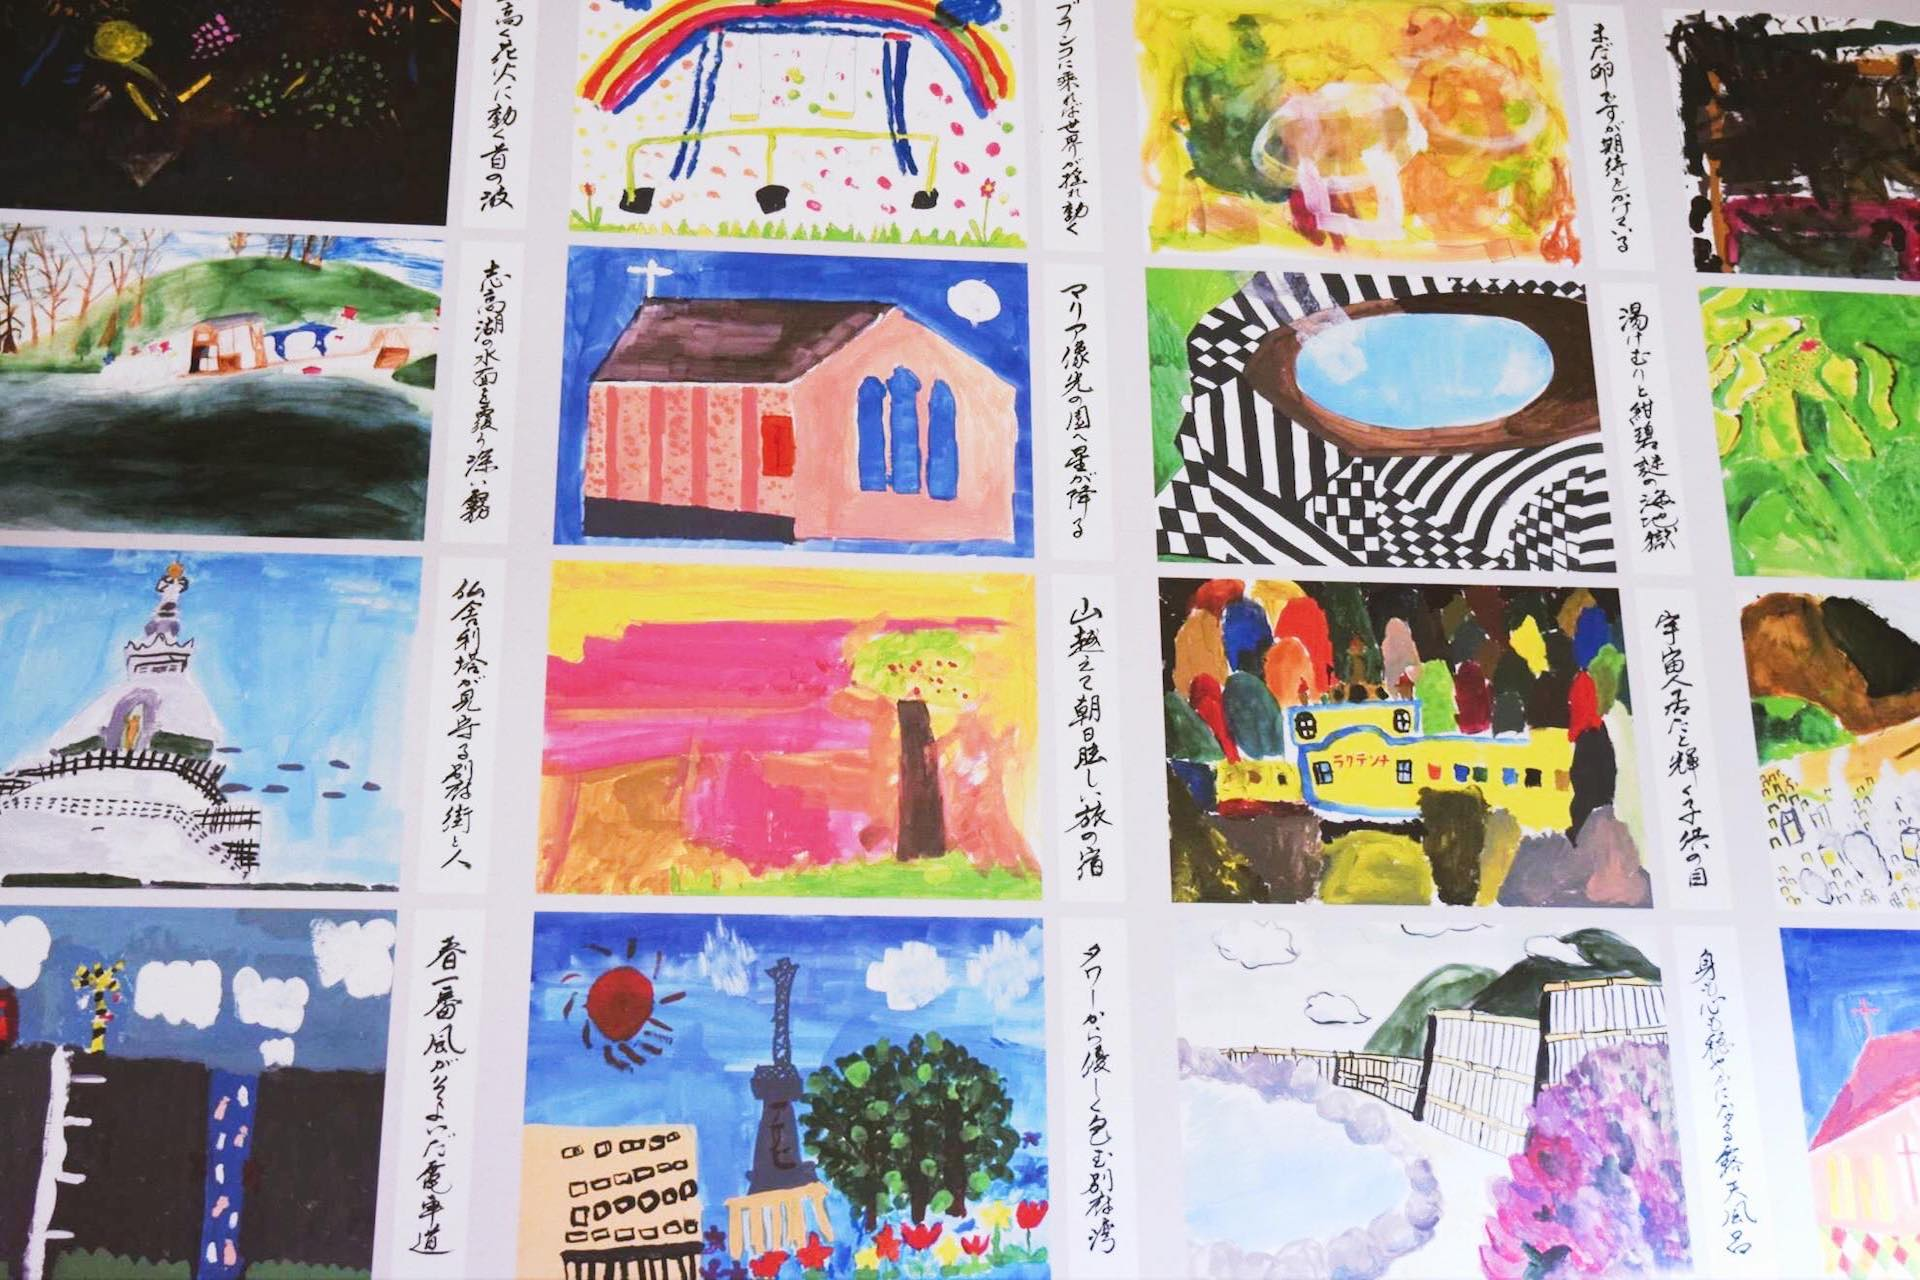 the paintings of the children